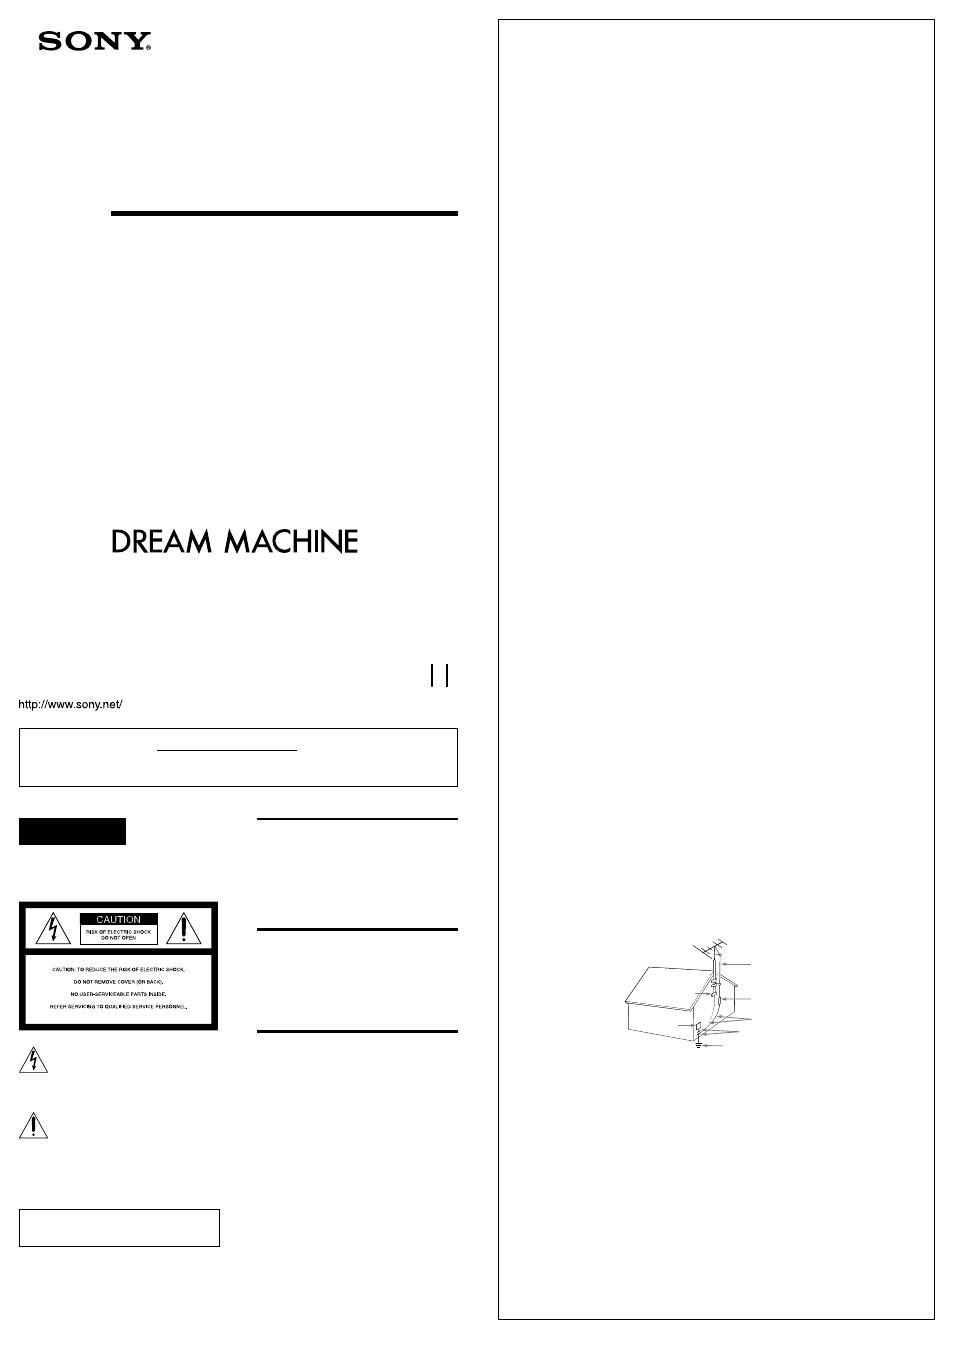 Sony Icf C212 User Manual 2 Pages Also For Dream Machine Icf C212